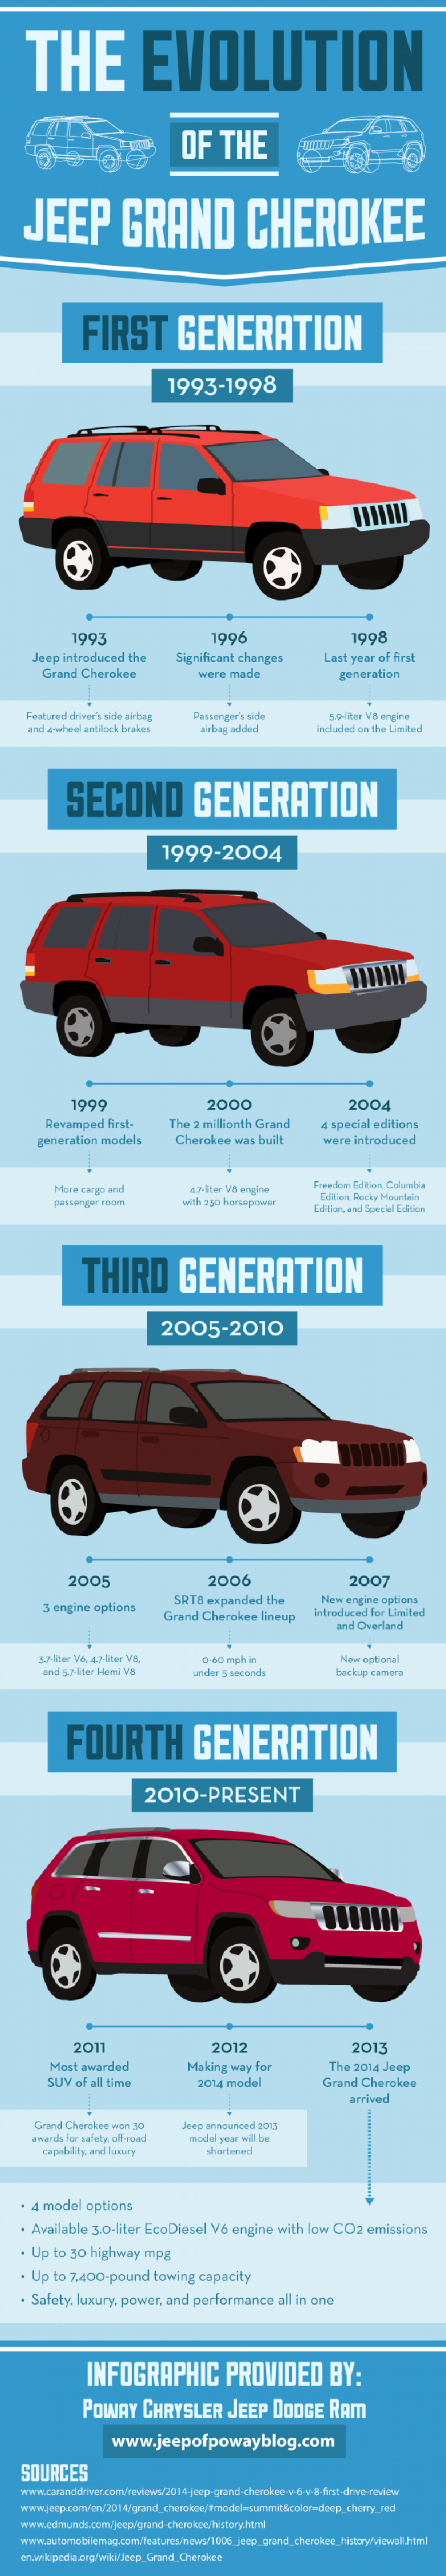 Hey San Diego, Check Out the Evolution of the Jeep Grand Cherokee! Infographic